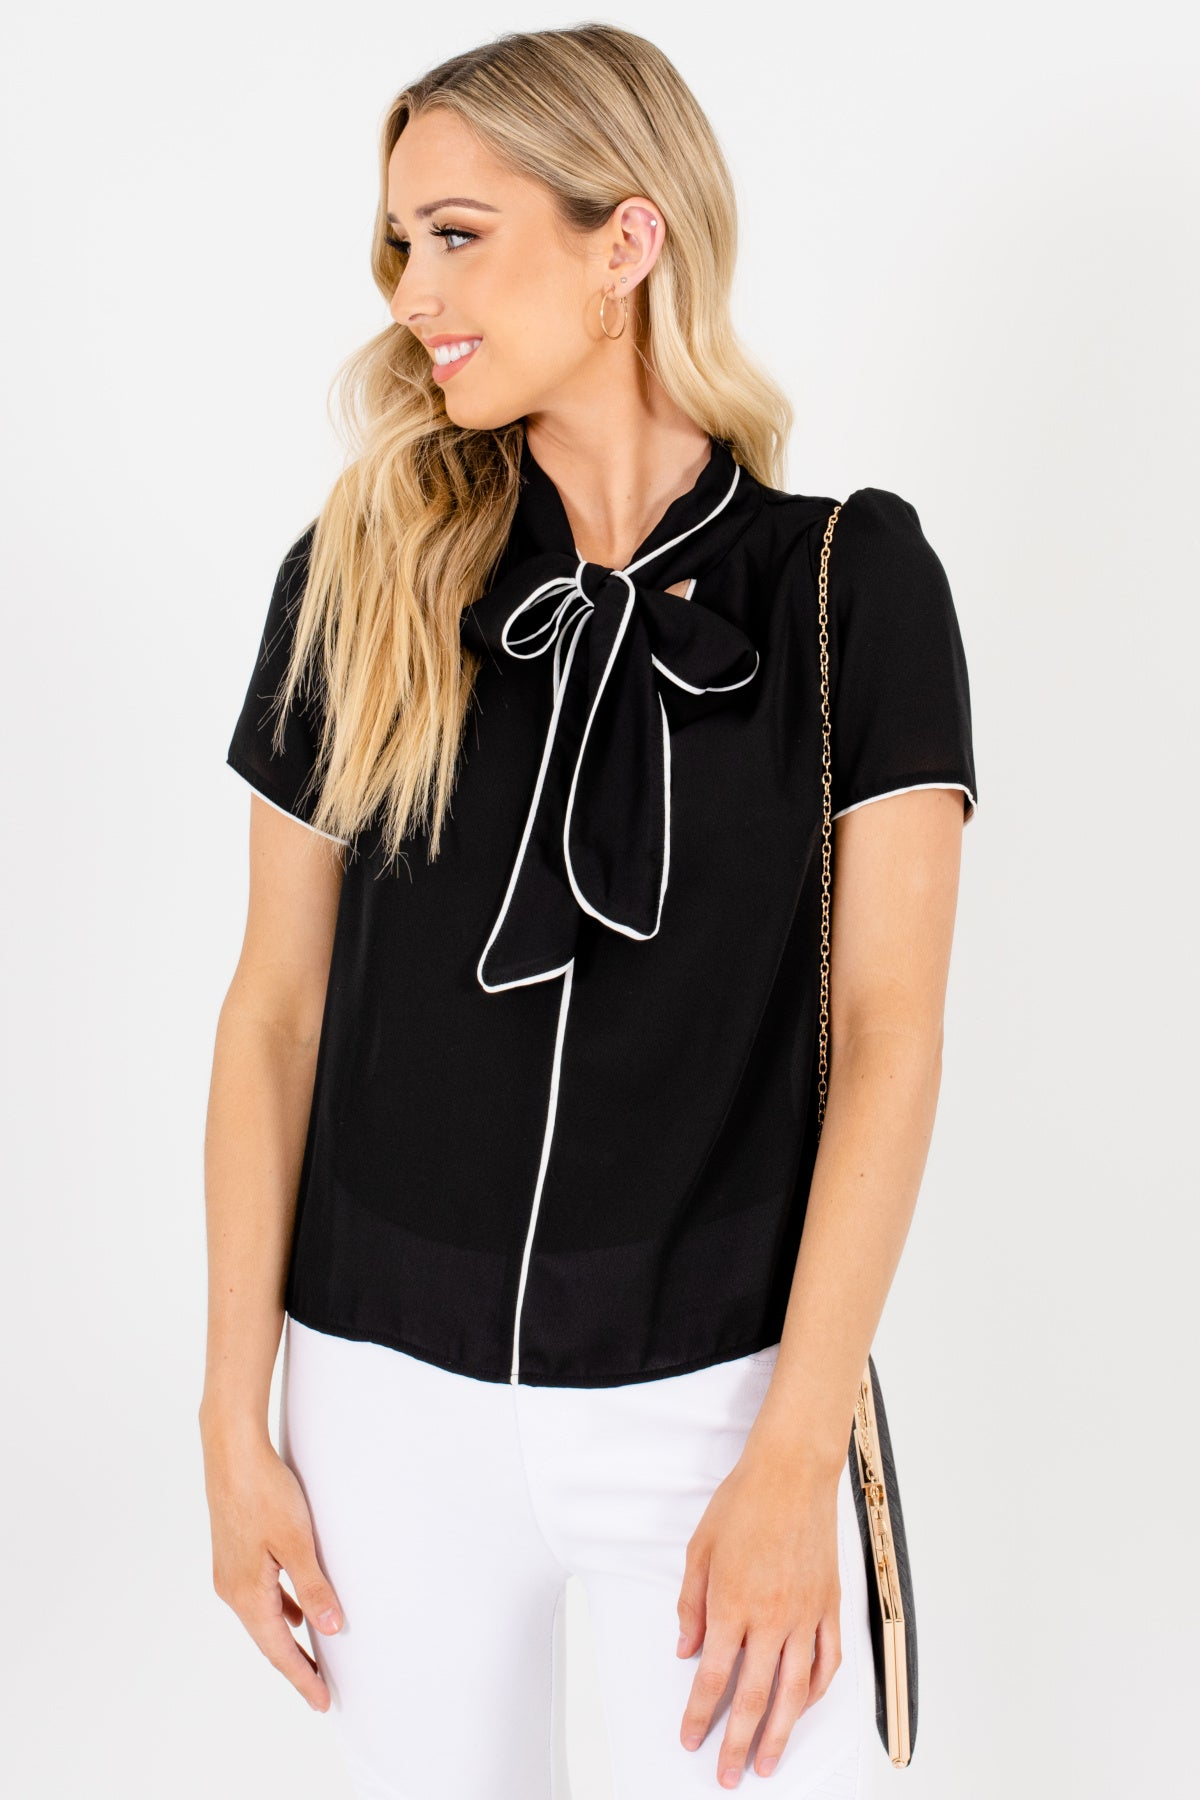 Black Tie Neckline Detail White Trim Blouses